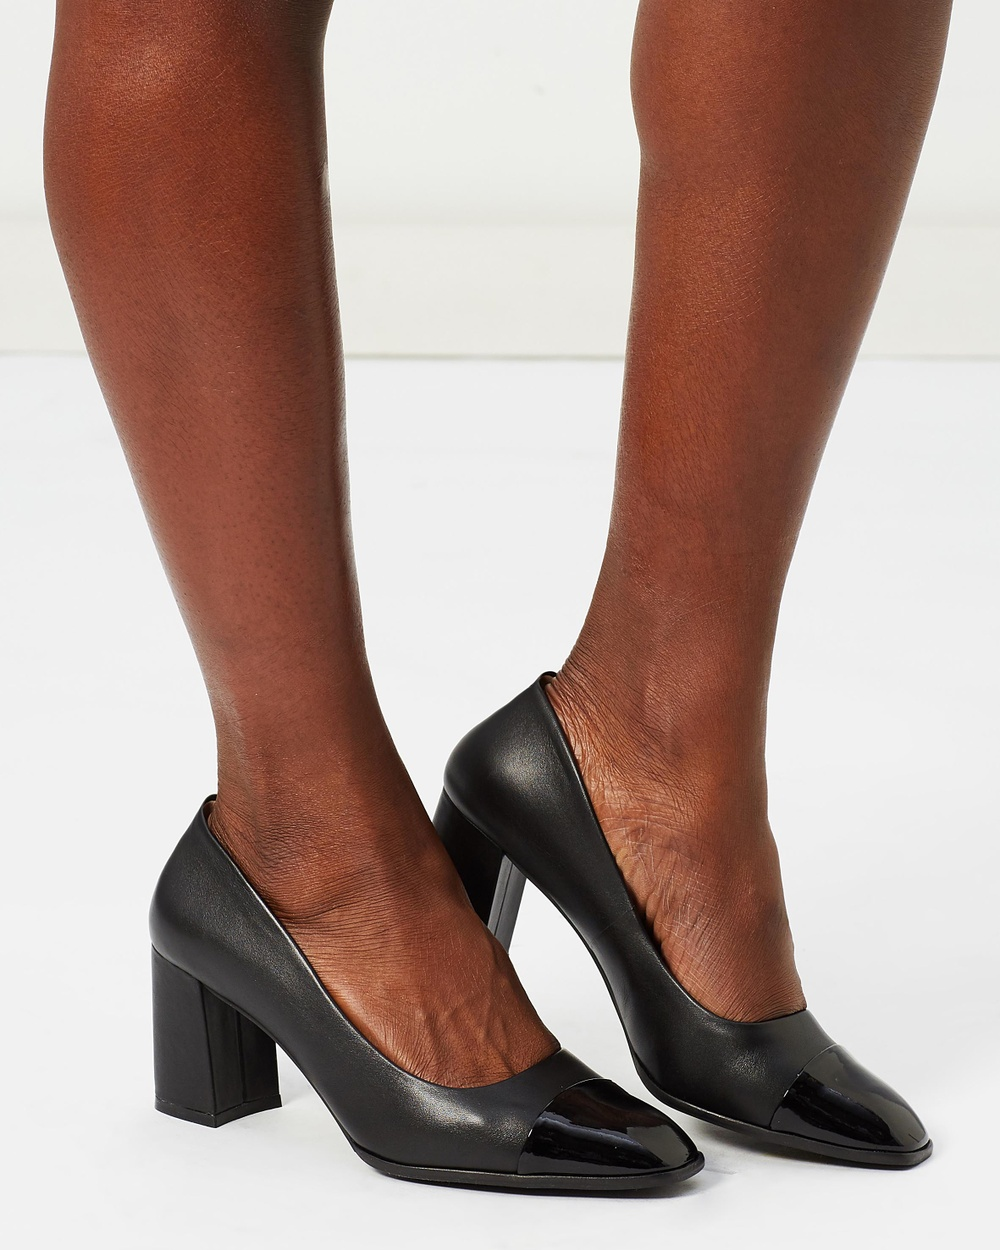 Shoes of Prey ICONIC EXCLUSIVE Vista Leather Pumps All Pumps Black Leather ICONIC EXCLUSIVE Vista Leather Pumps